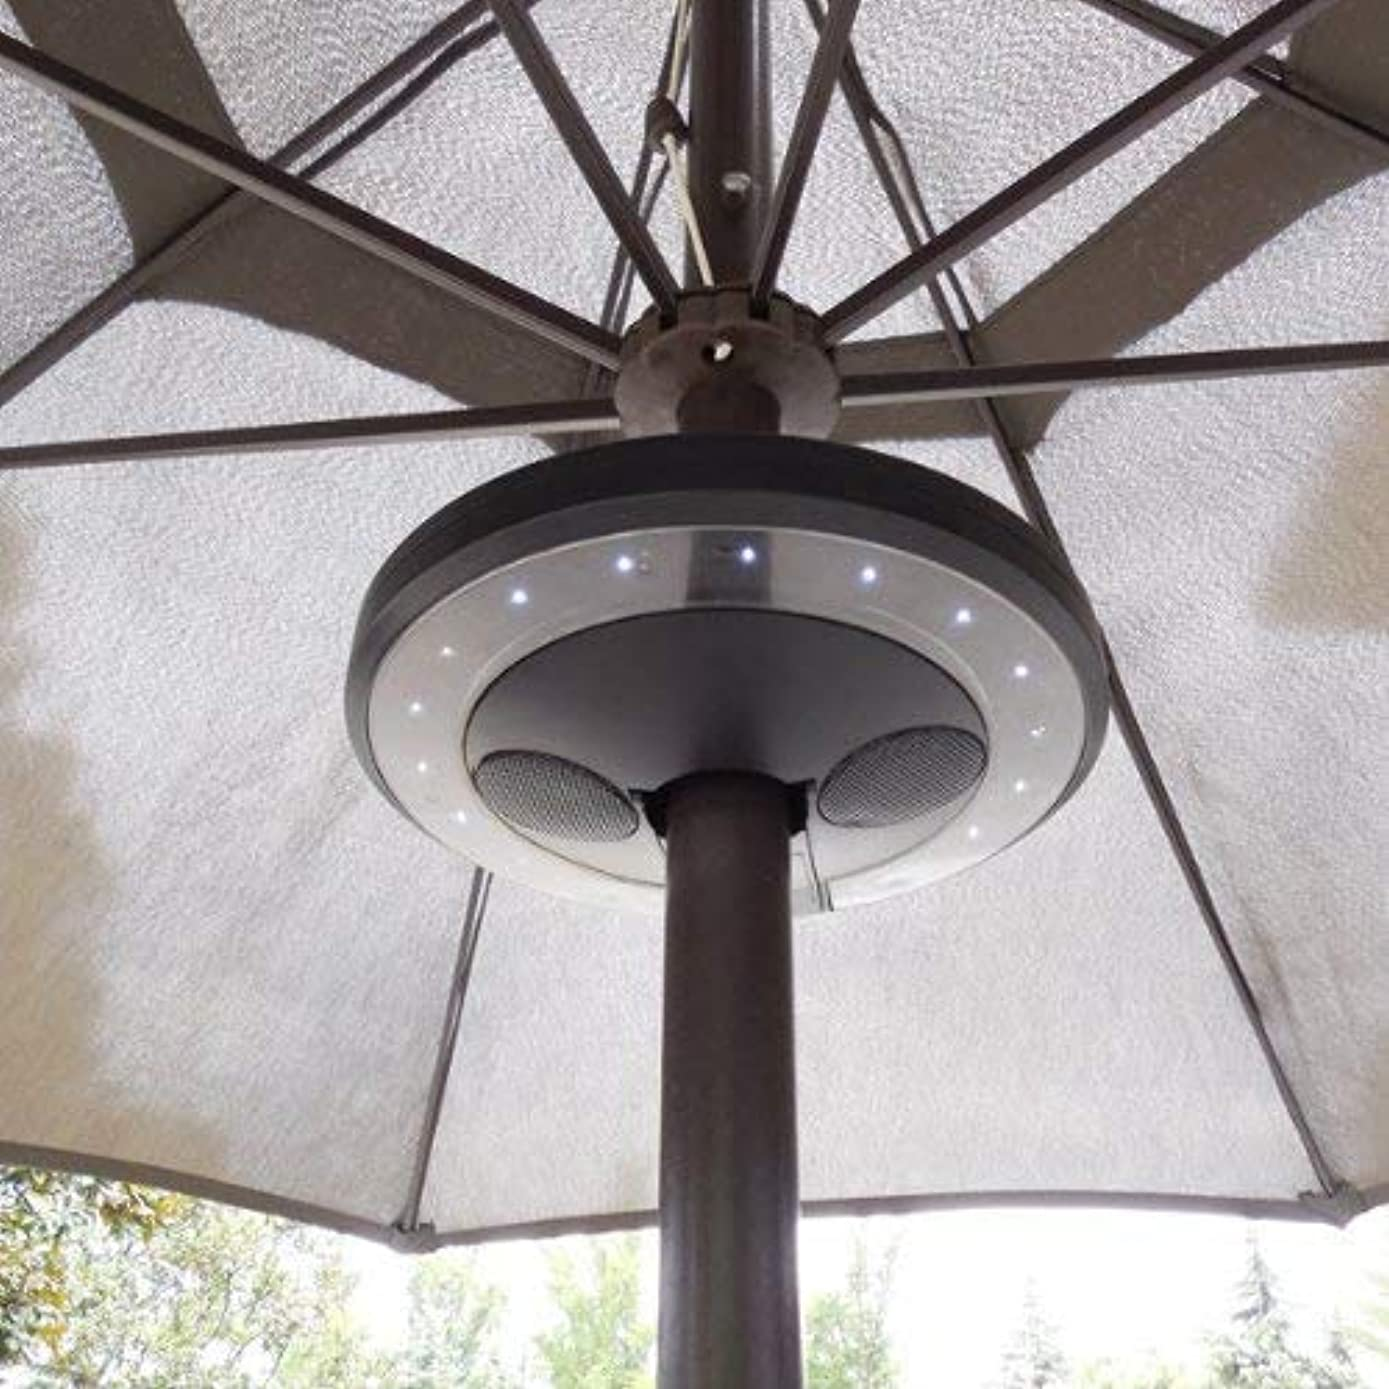 OKSLO Patio umbrella bluetooth speaker with led lights